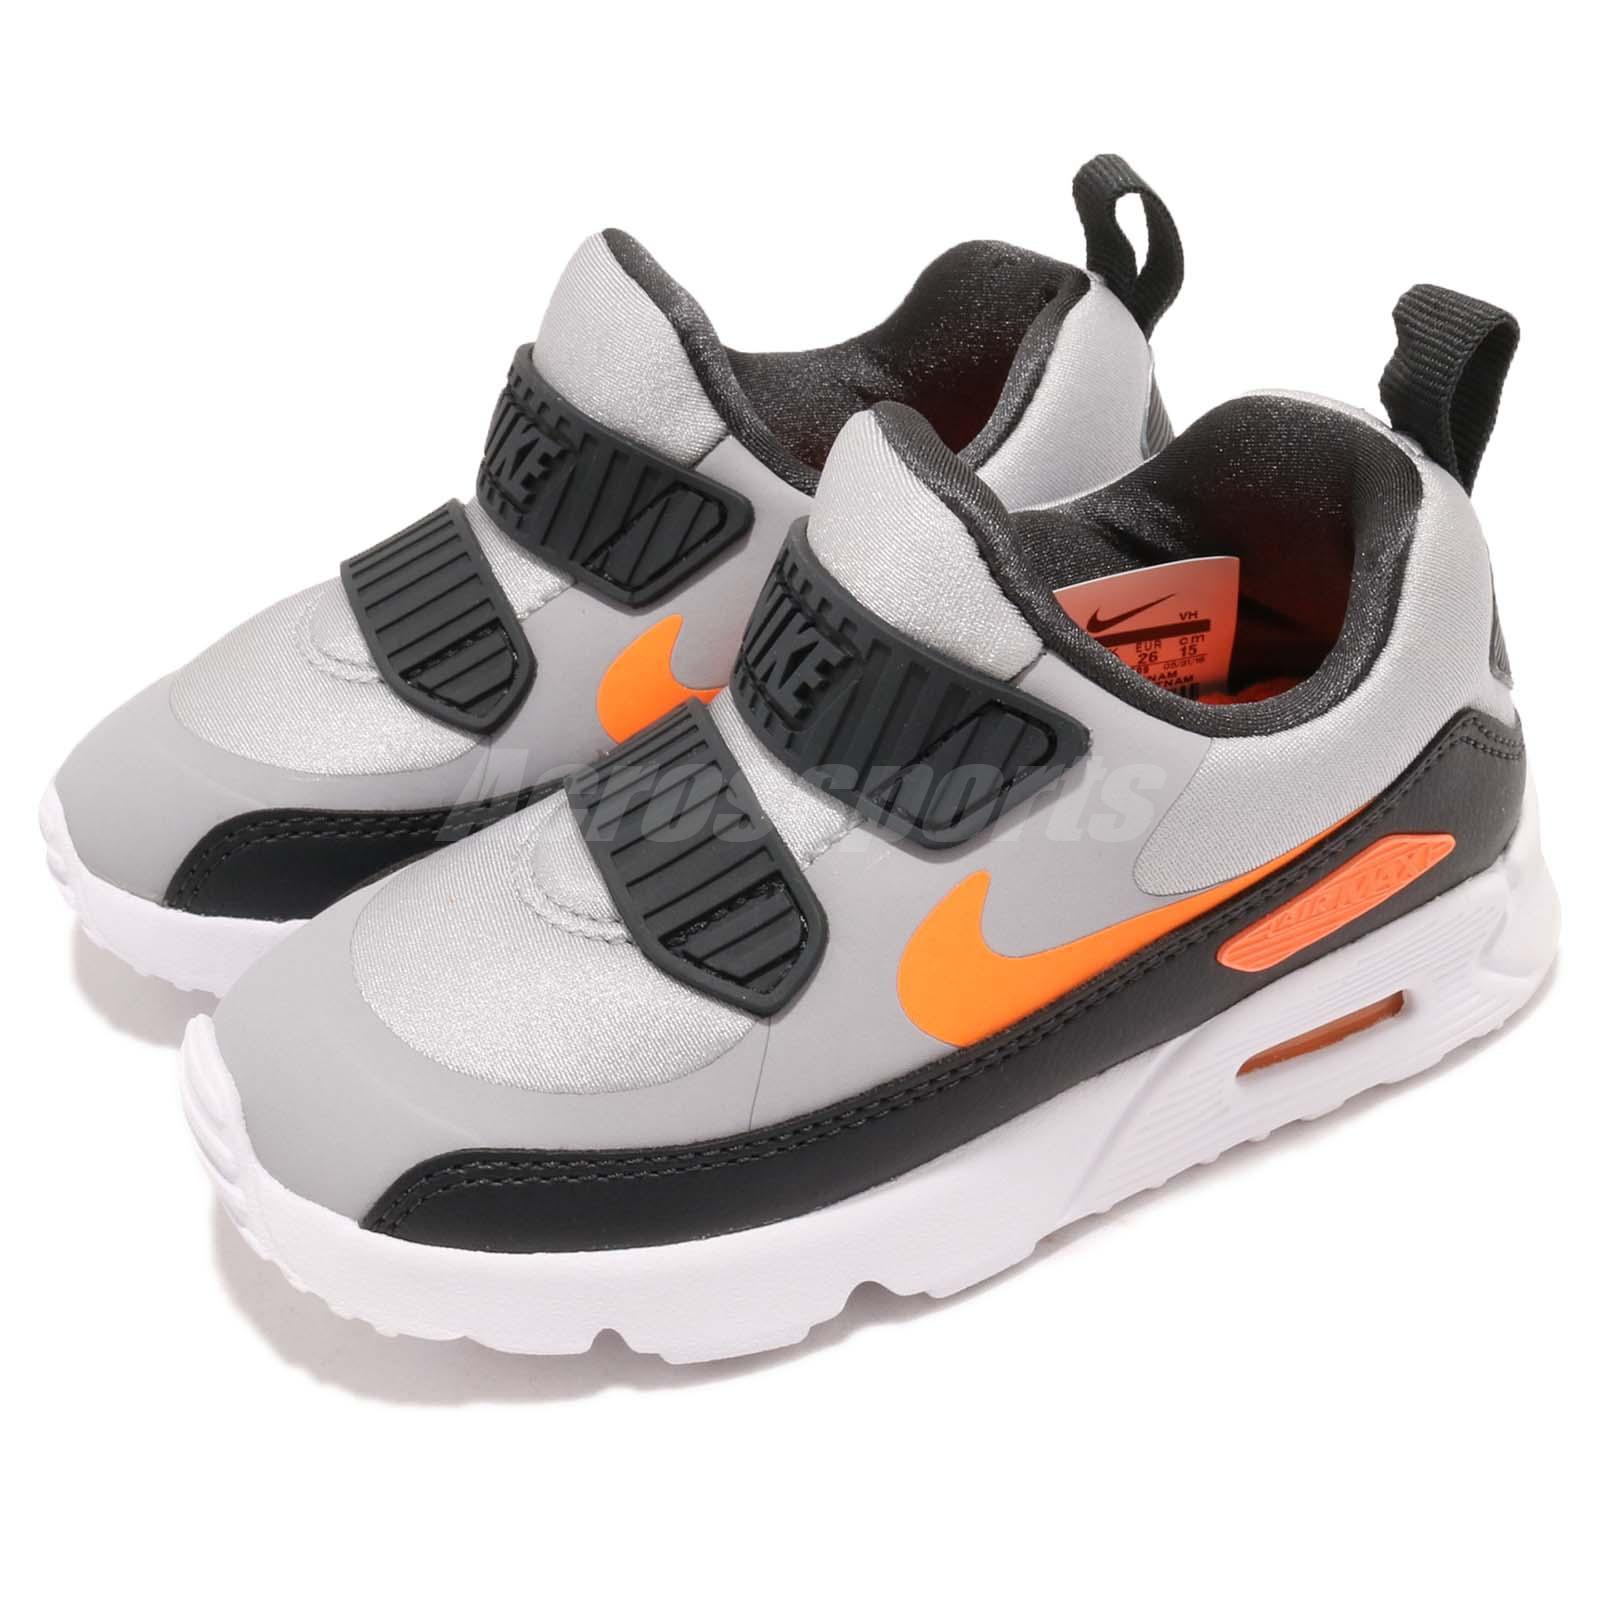 Details about Nike Air Max Tiny 90 TD Grey Orange Black Toddler Infant Baby Shoes 881924 009